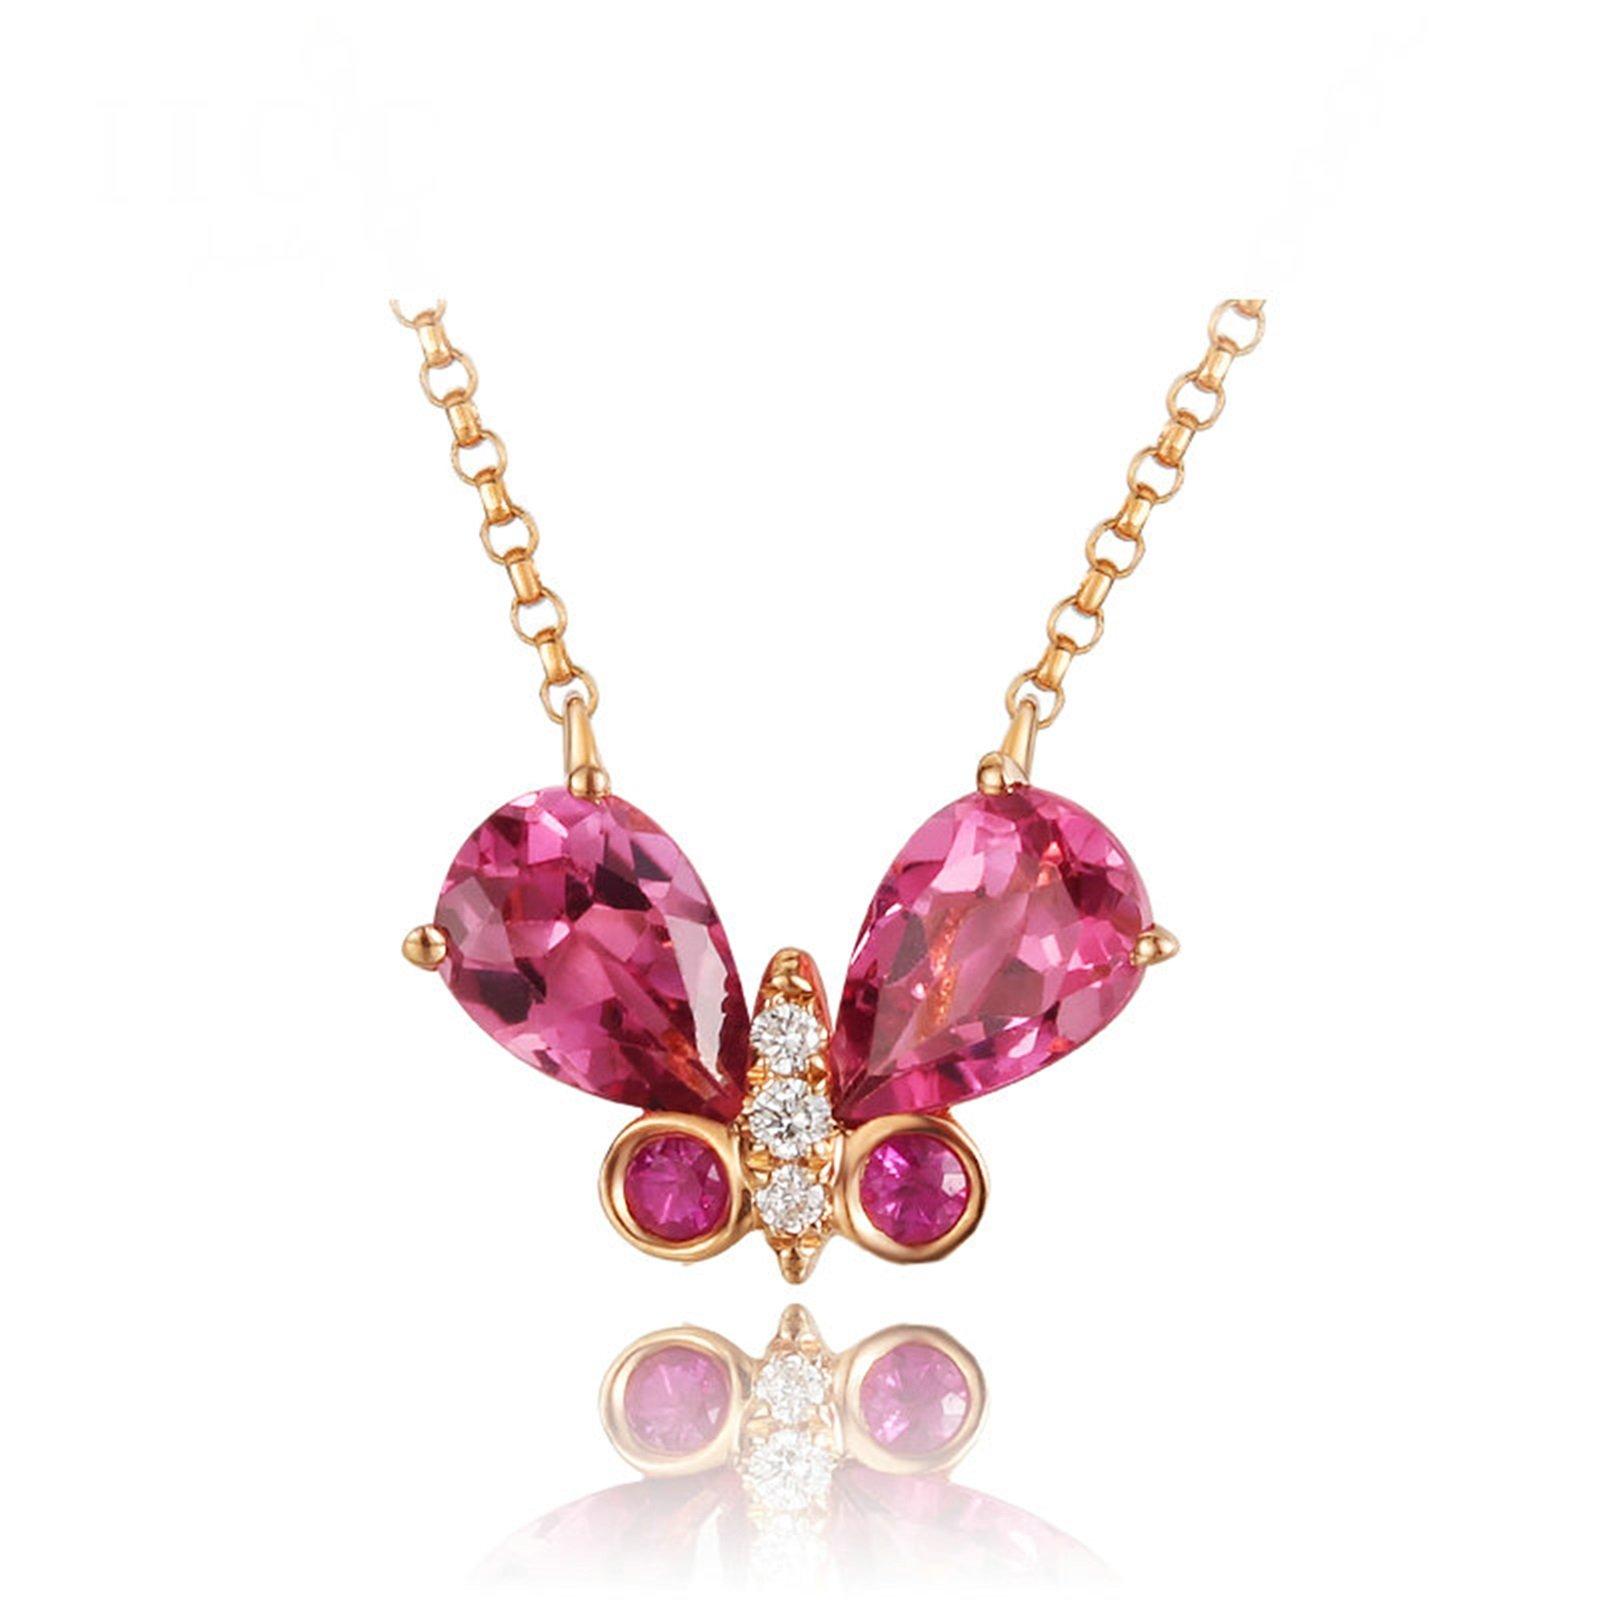 Daesar 18K Gold Necklace For Women Butterfly Tourmaline Pink Pendant Necklace Rose Gold Chain Length:45CM